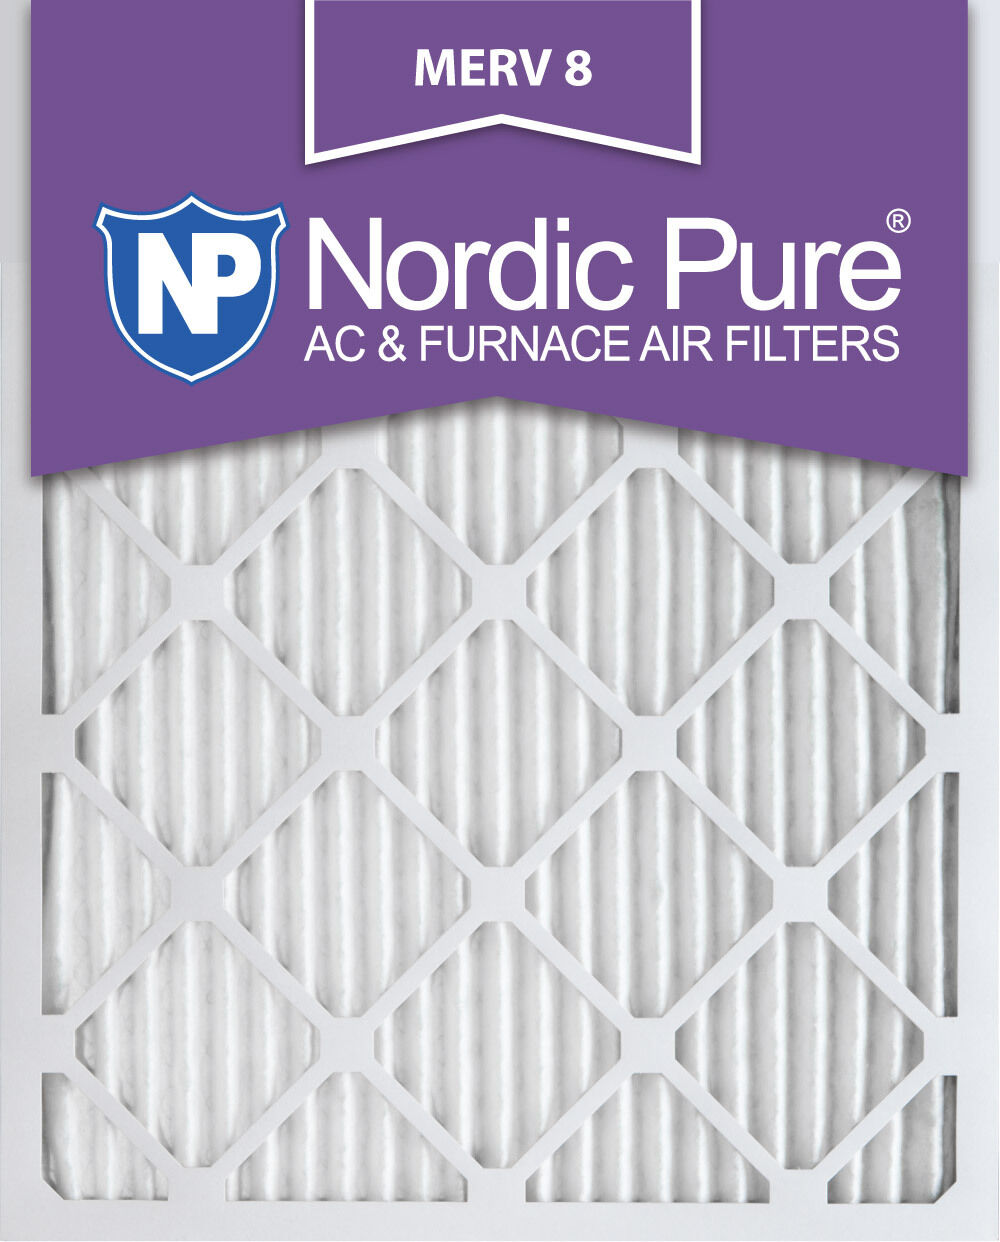 Nordic Pure 21x21x1 MERV 8 Pure Carbon Pleated Odor Reduction AC Furnace Air Filters 6 Pack